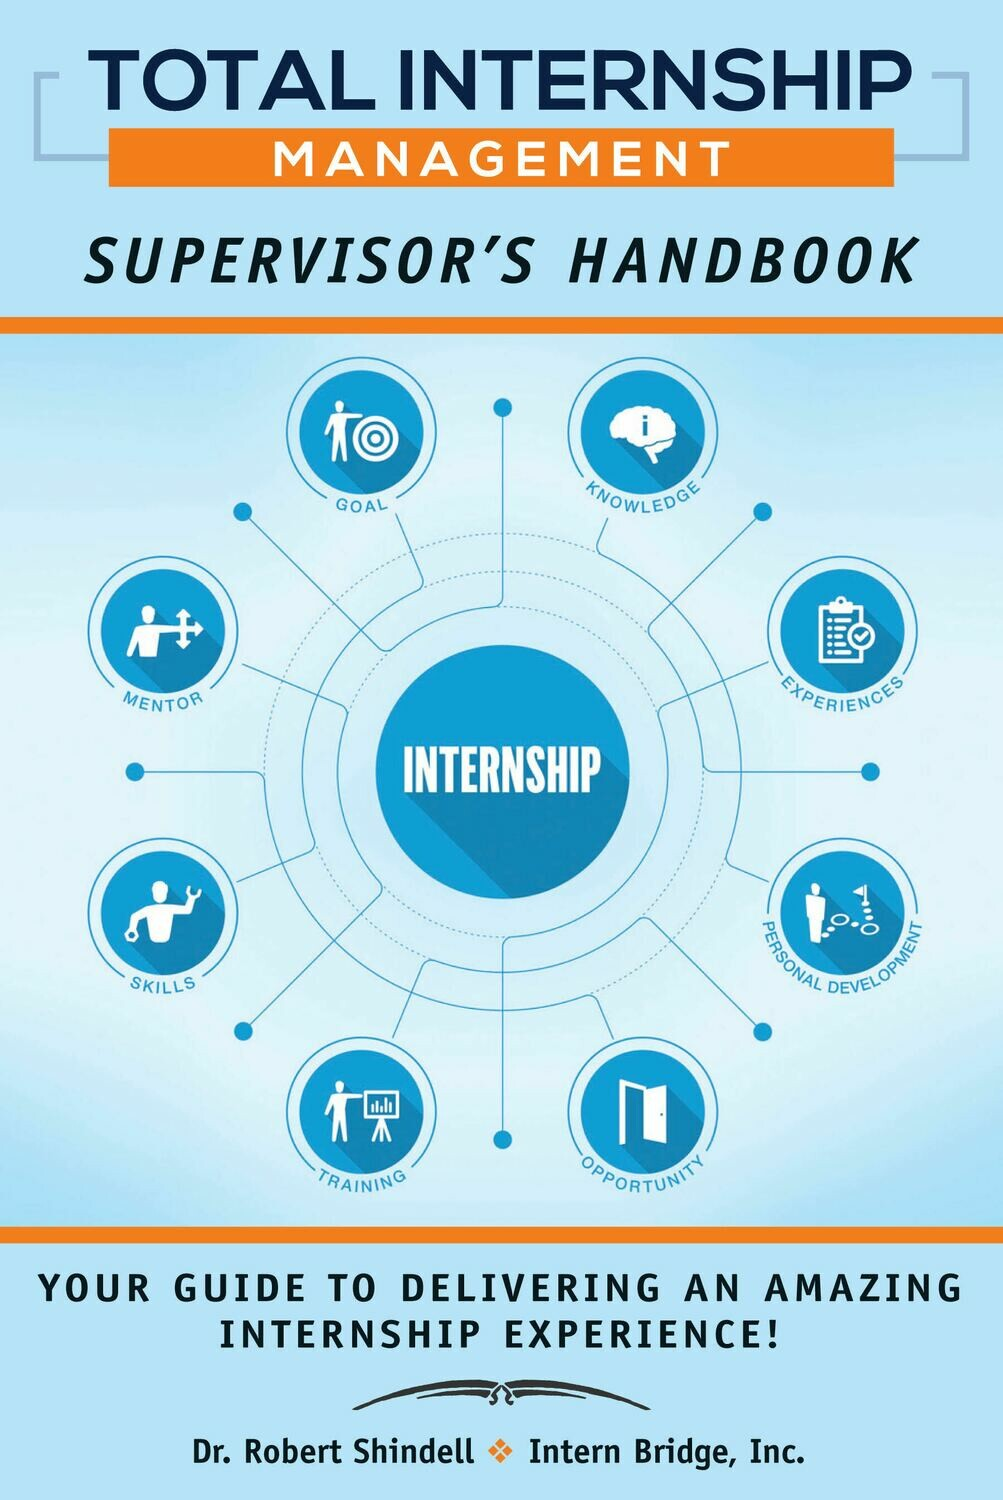 Total Internship Management, Supervisors Handbook - NEW EDITION CASE OF 40